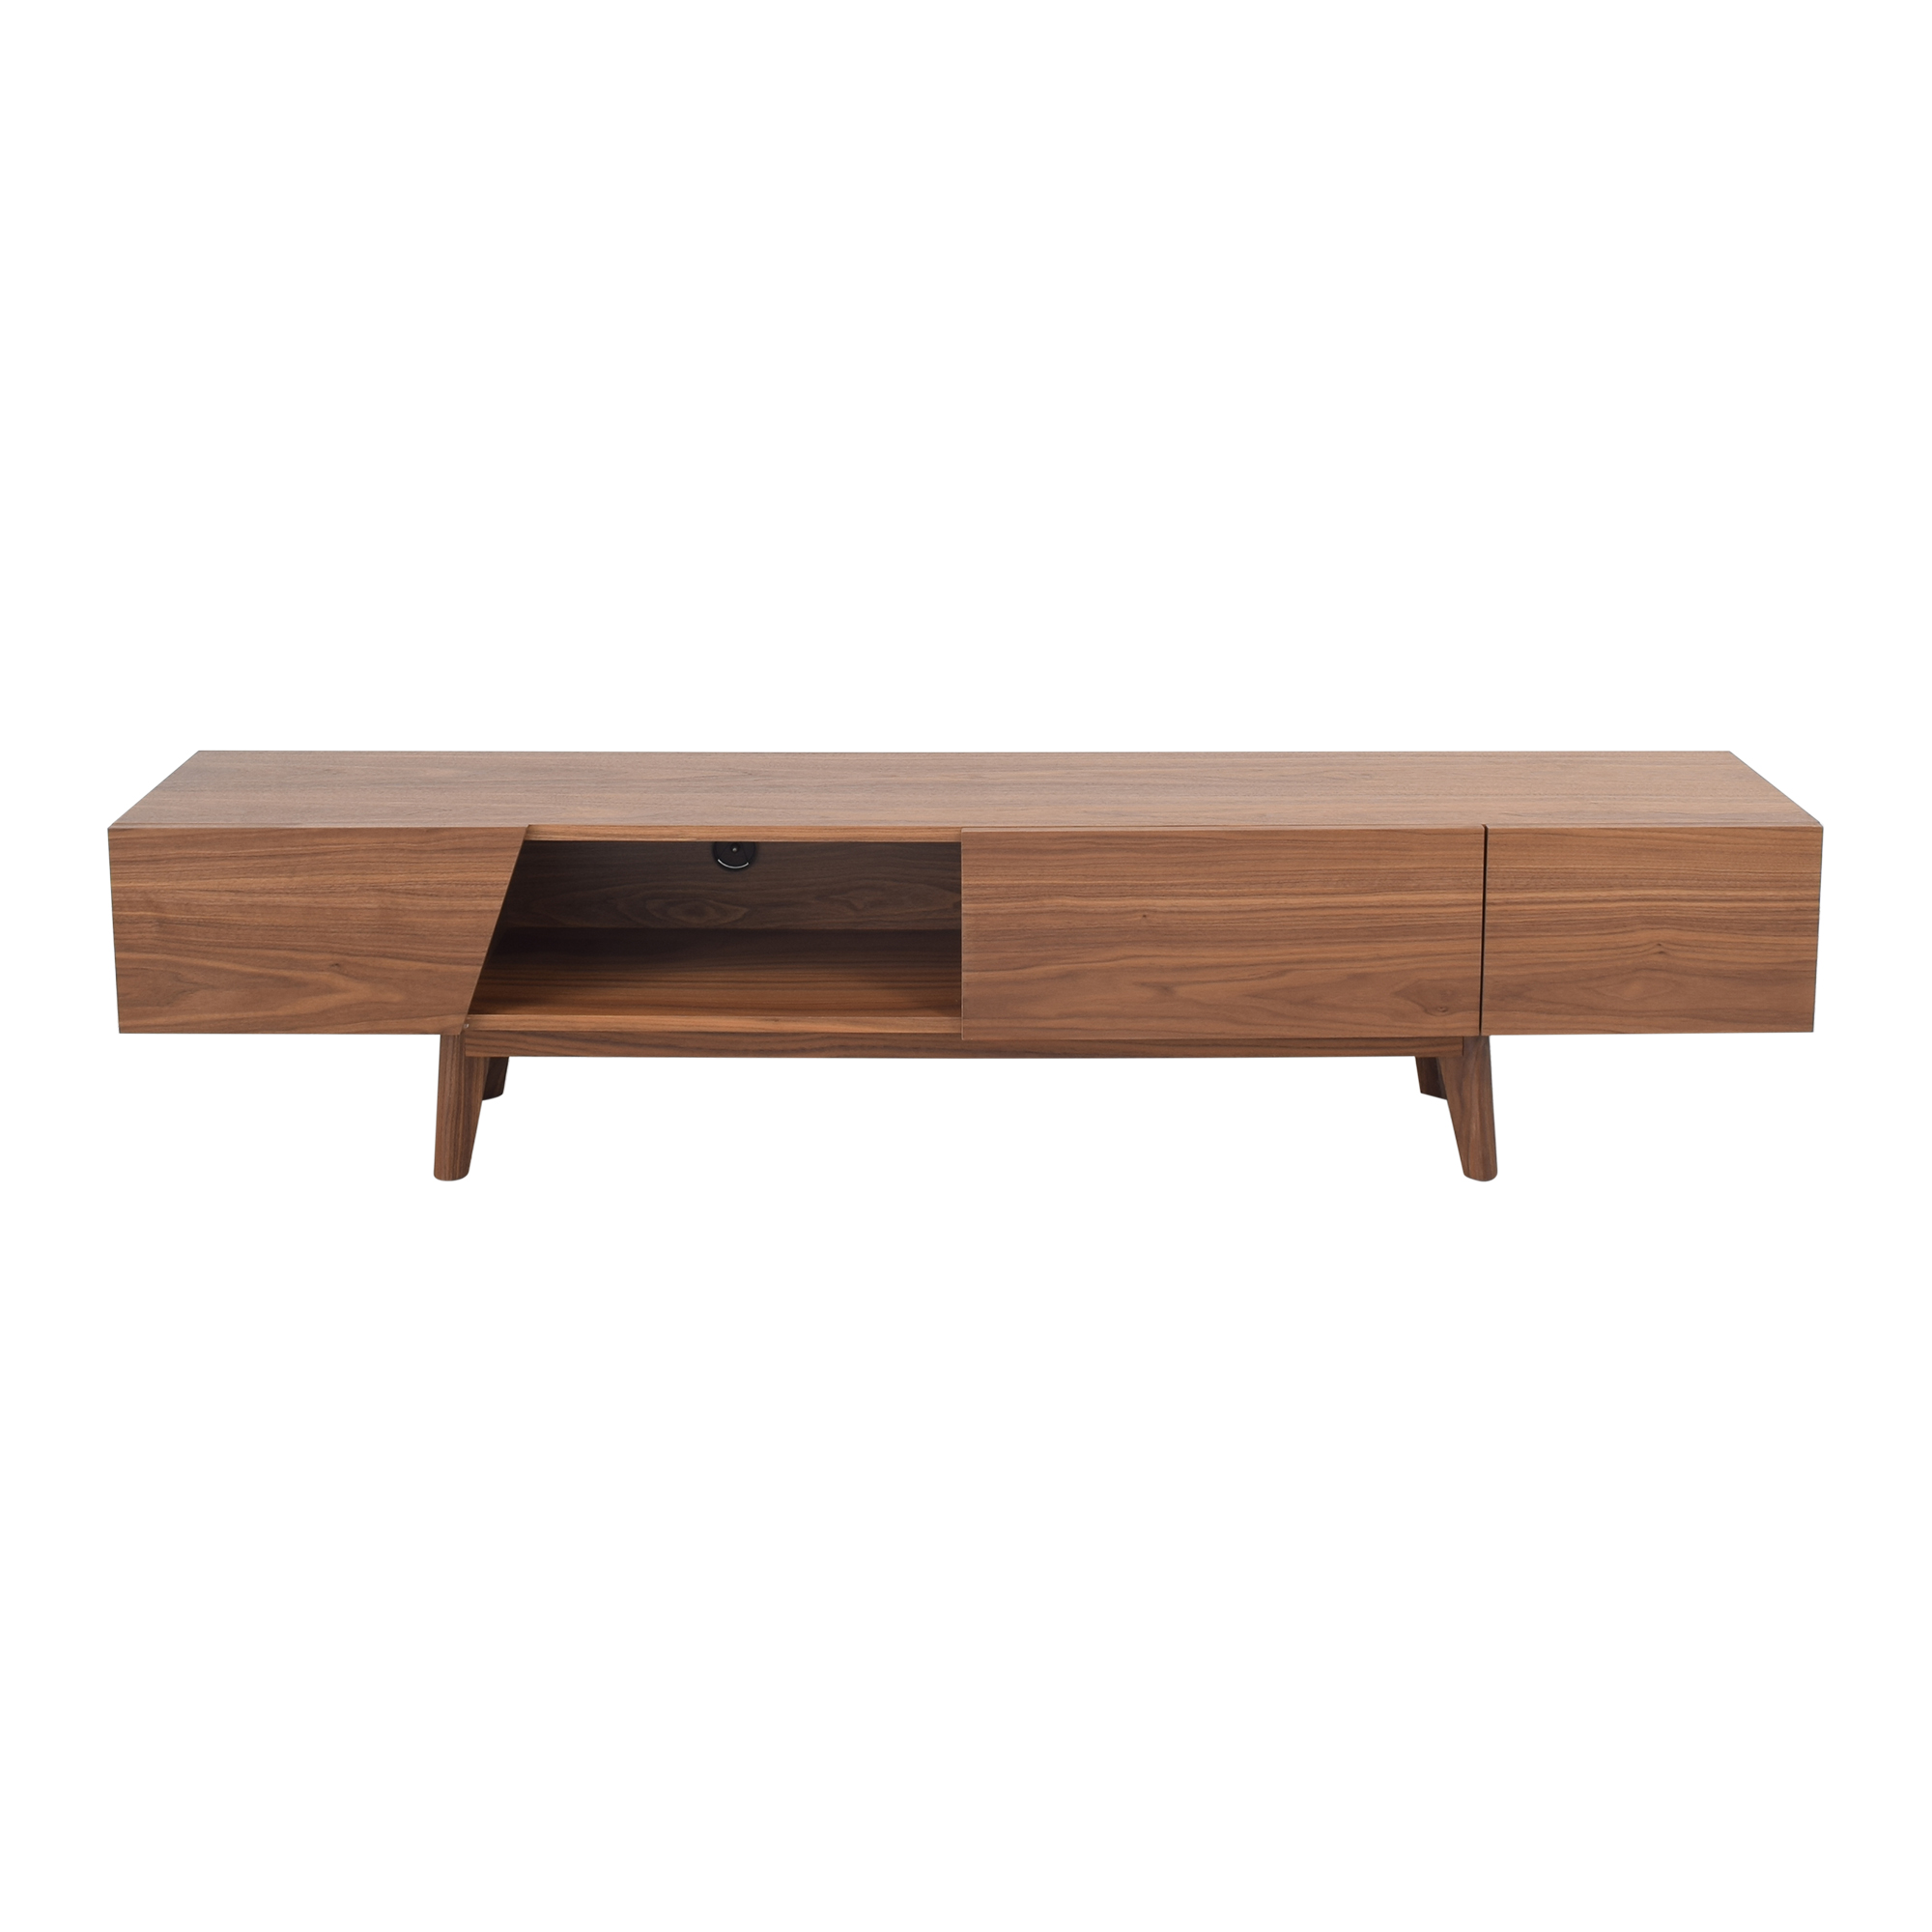 Modani Modani Cama TV Stand Walnut coupon